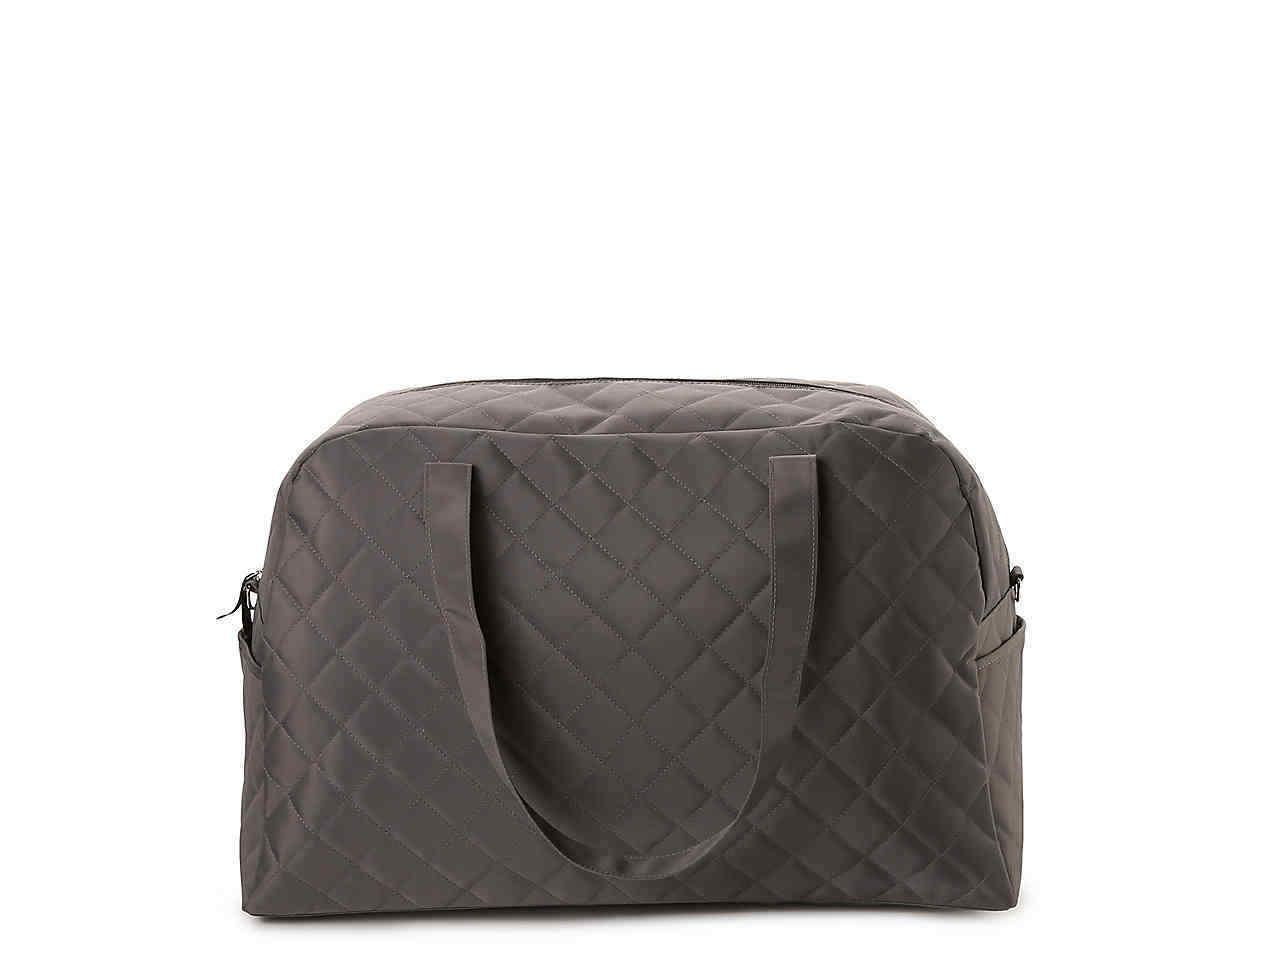 DSW WOMEN QUILTED TRAVEL BAG, LARGE BAG